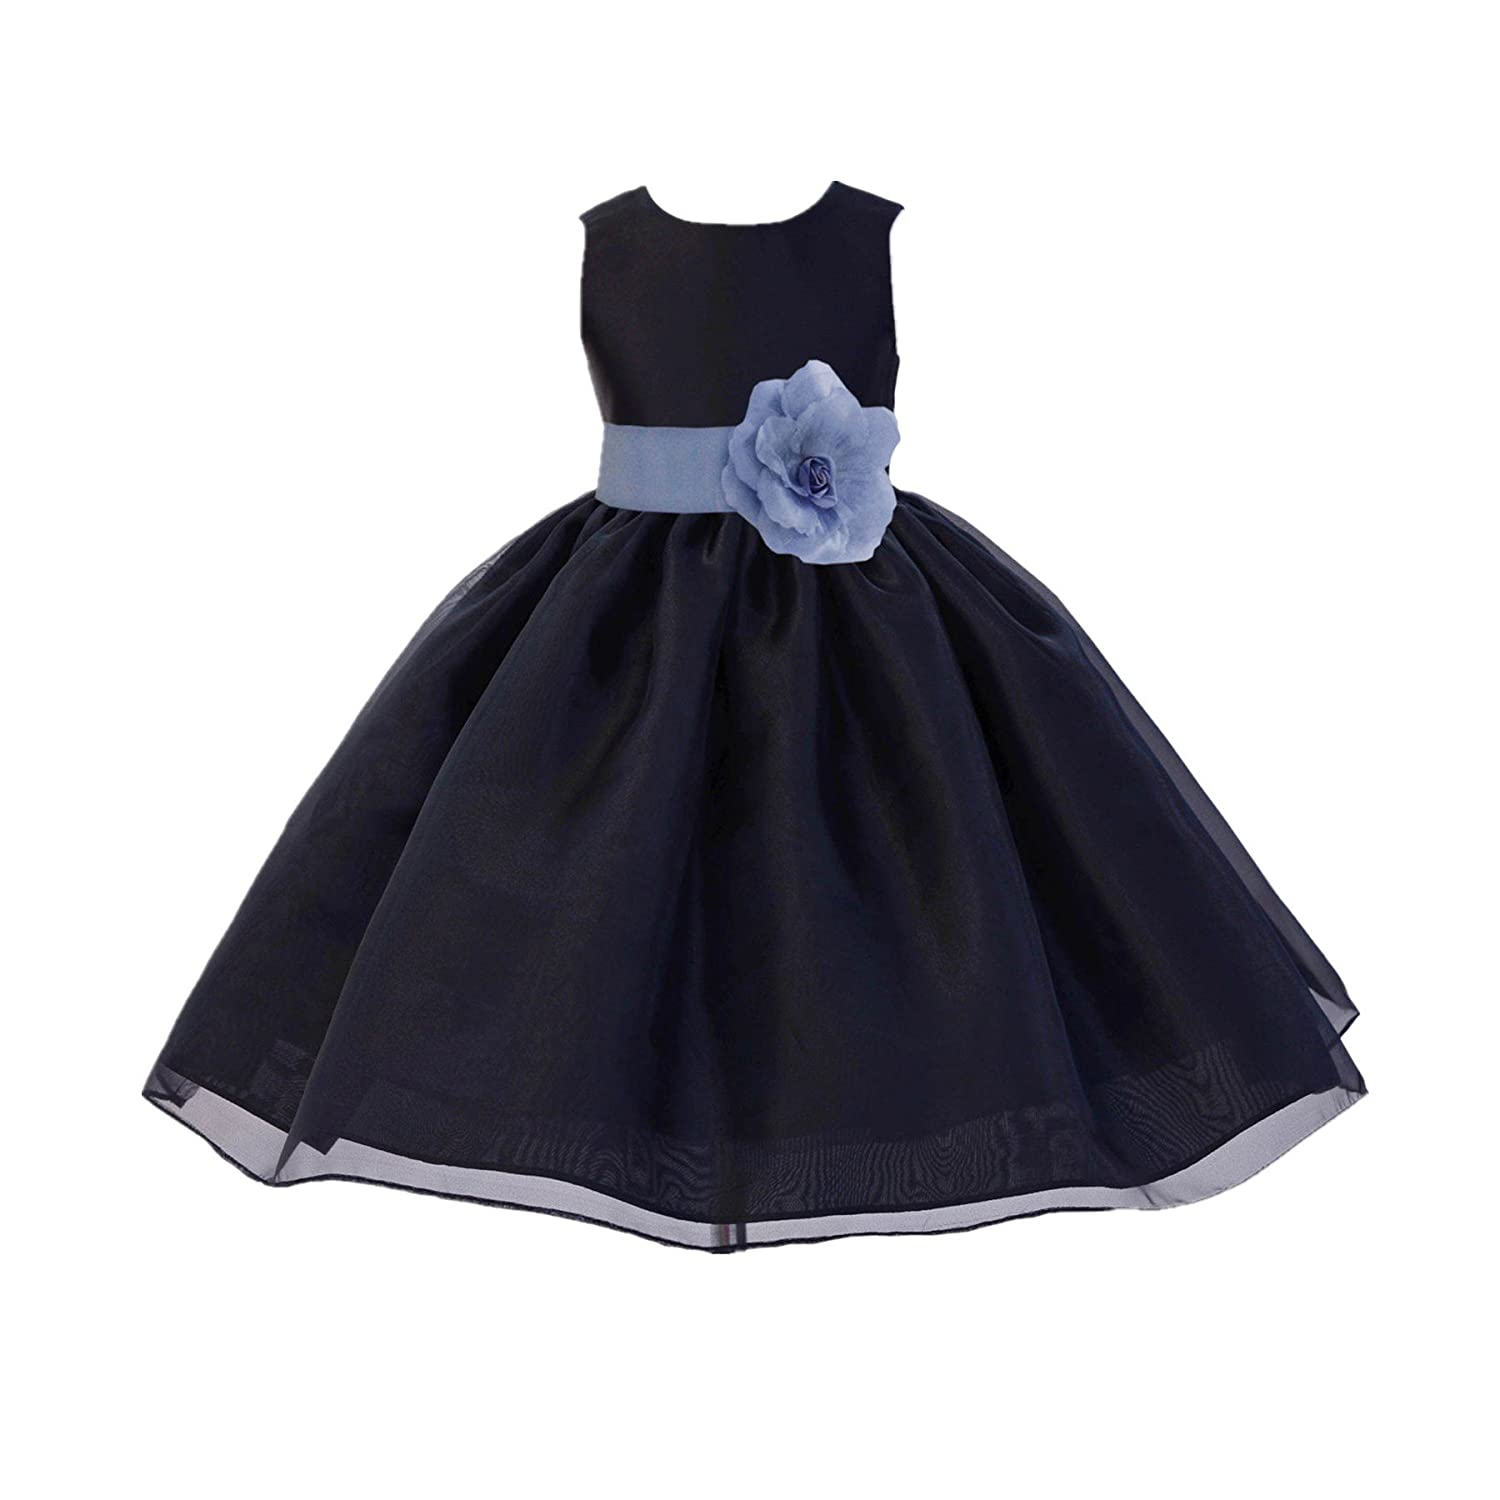 f91a2653411 We used an additional petticoat that is not included with the dress.  Material  Satin Poly   Satin Lining   Polyester Tulle